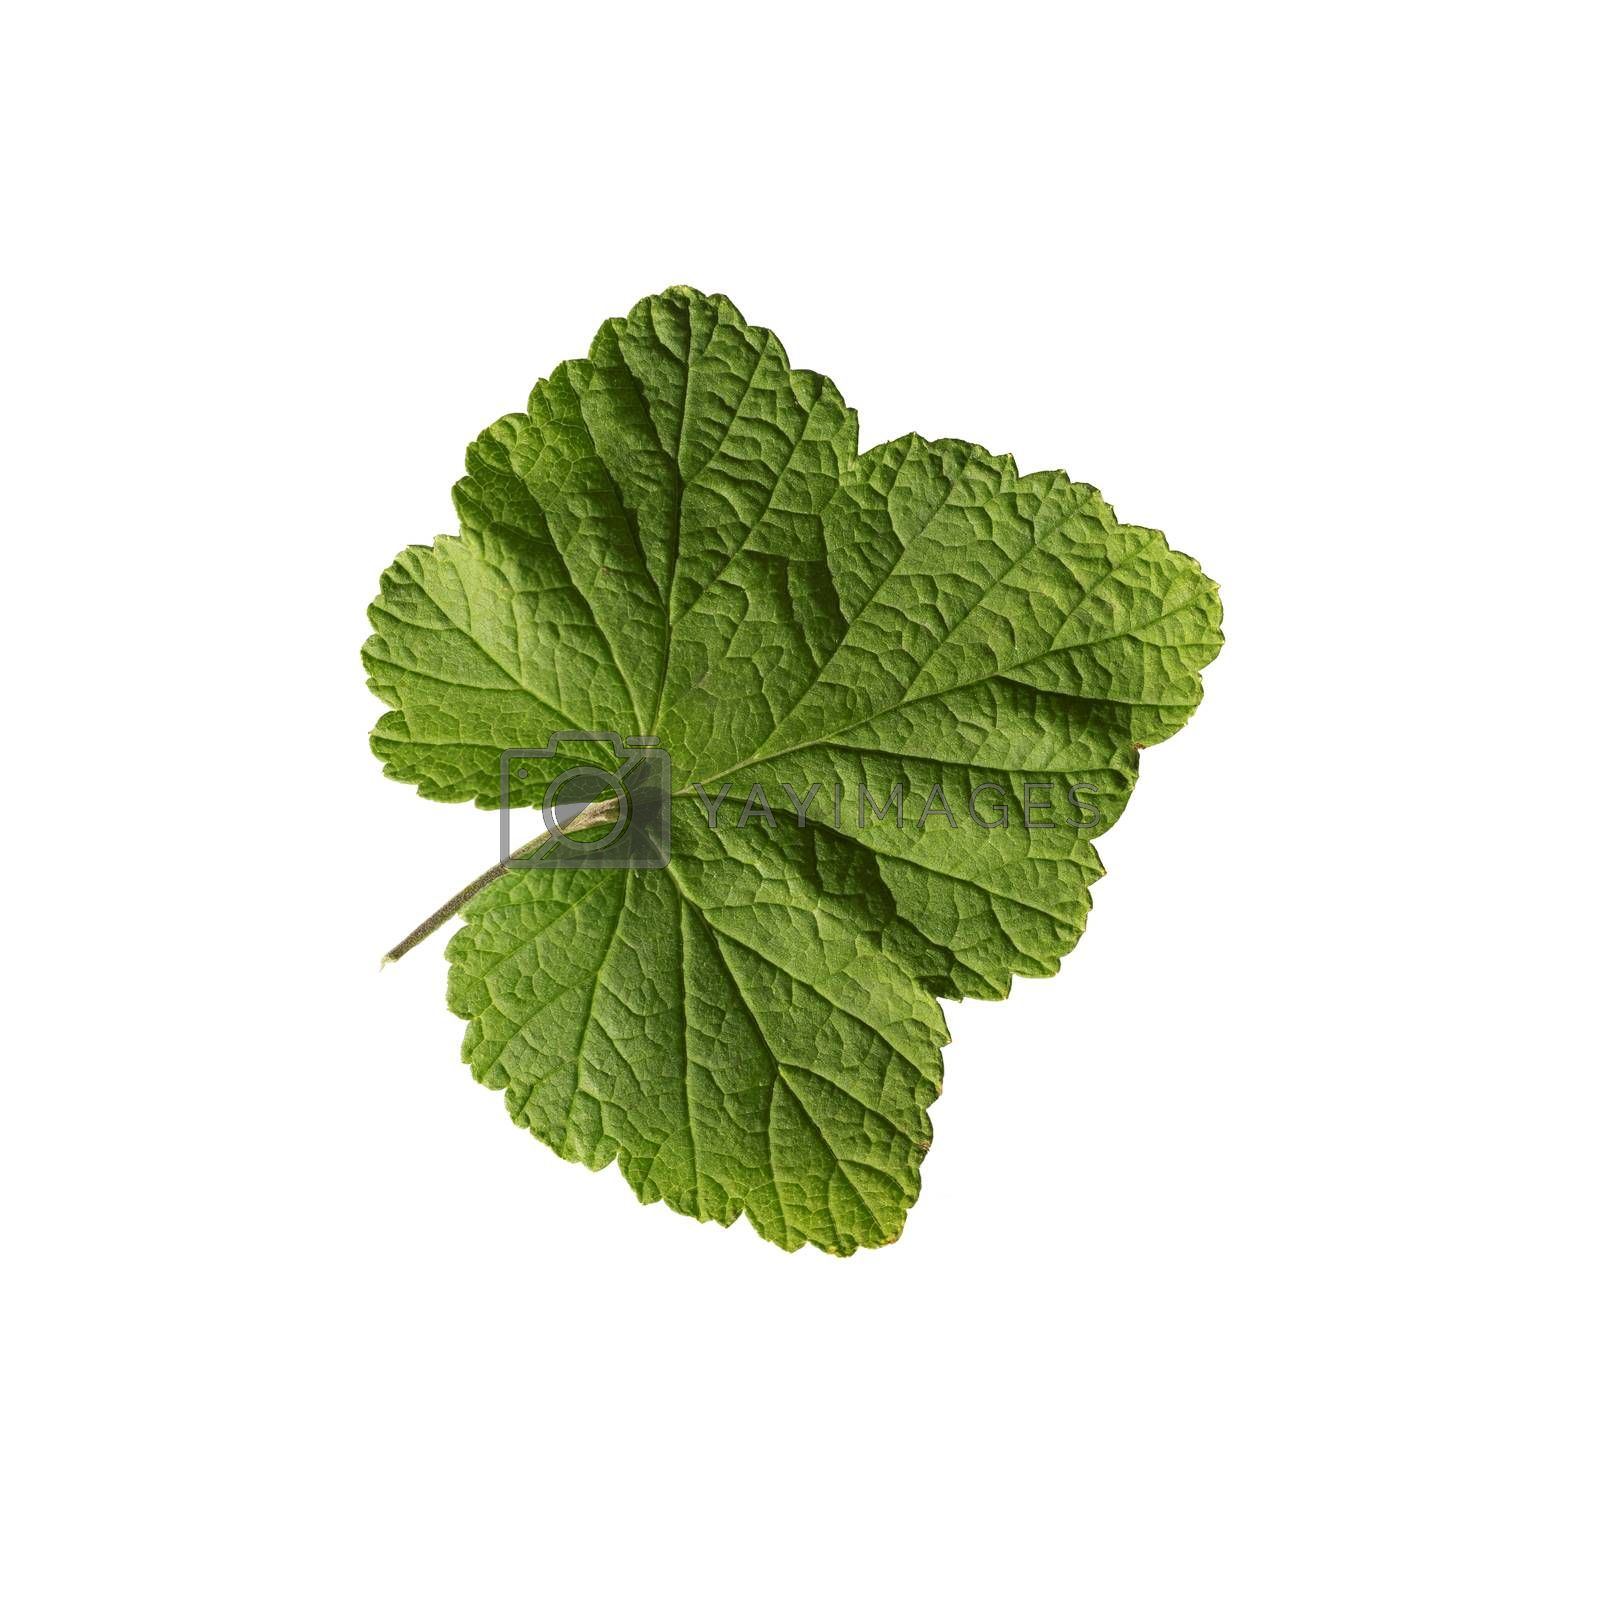 Green currant leaf isolated on white background. Top view